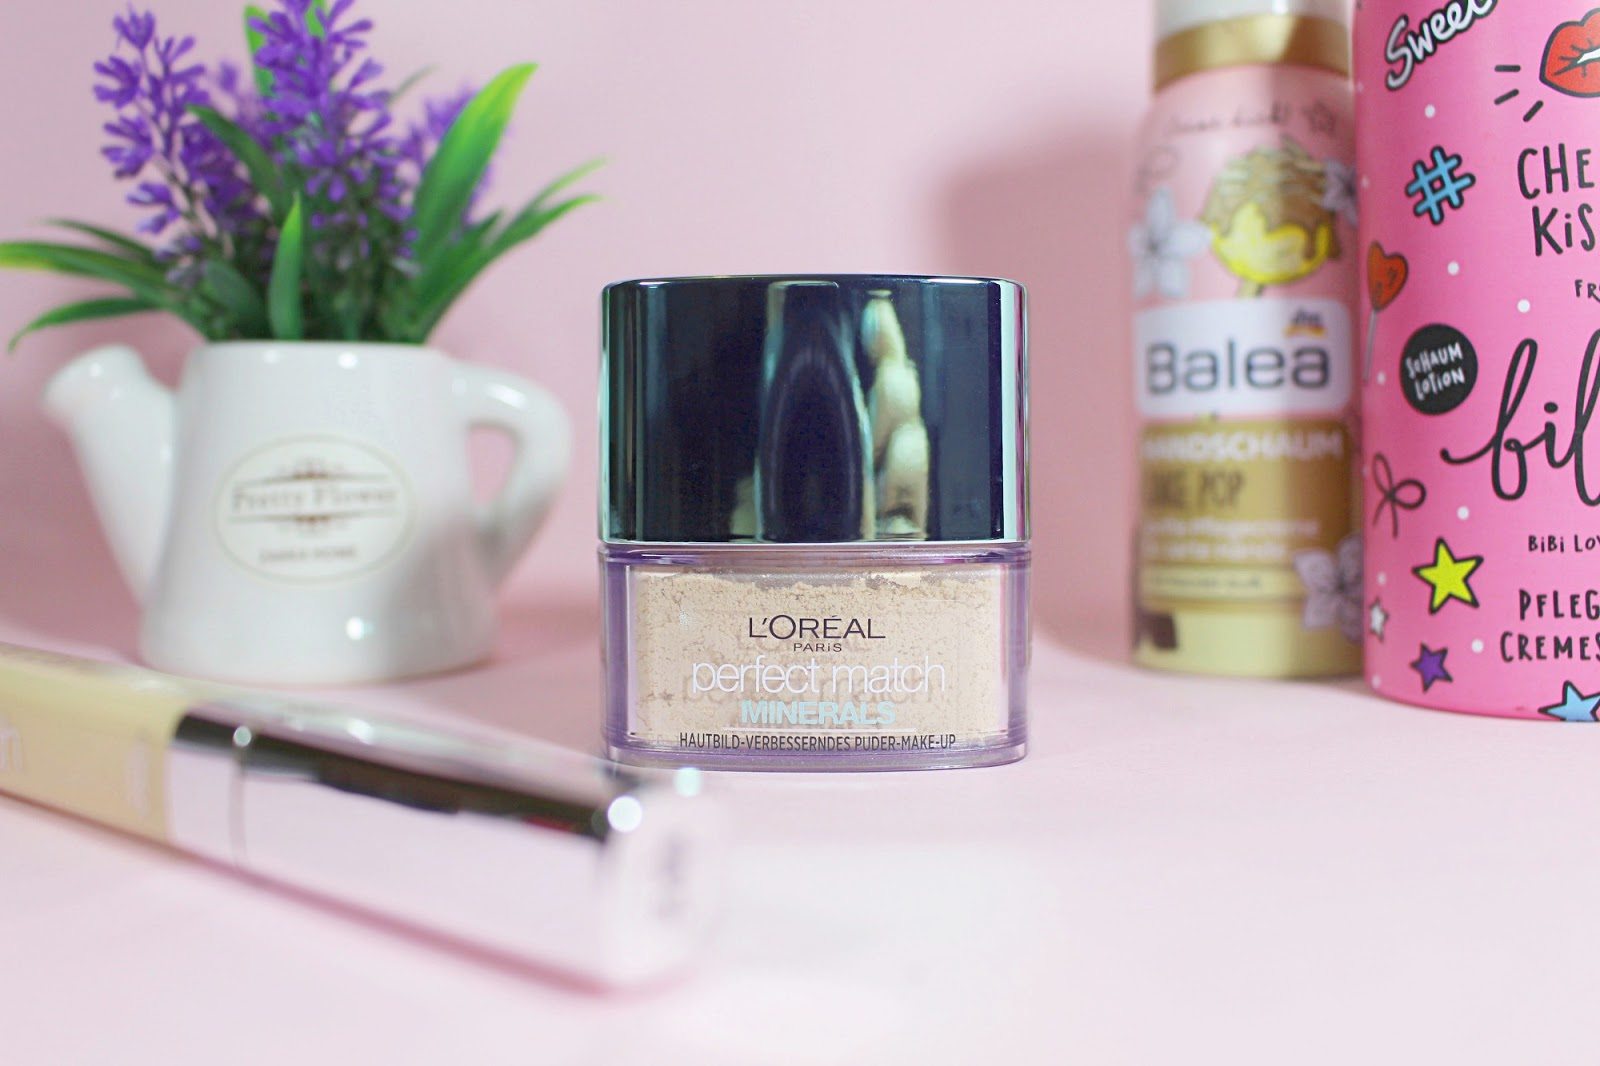 mineral drugstore makeup review loreal base foundation products blogger pictures